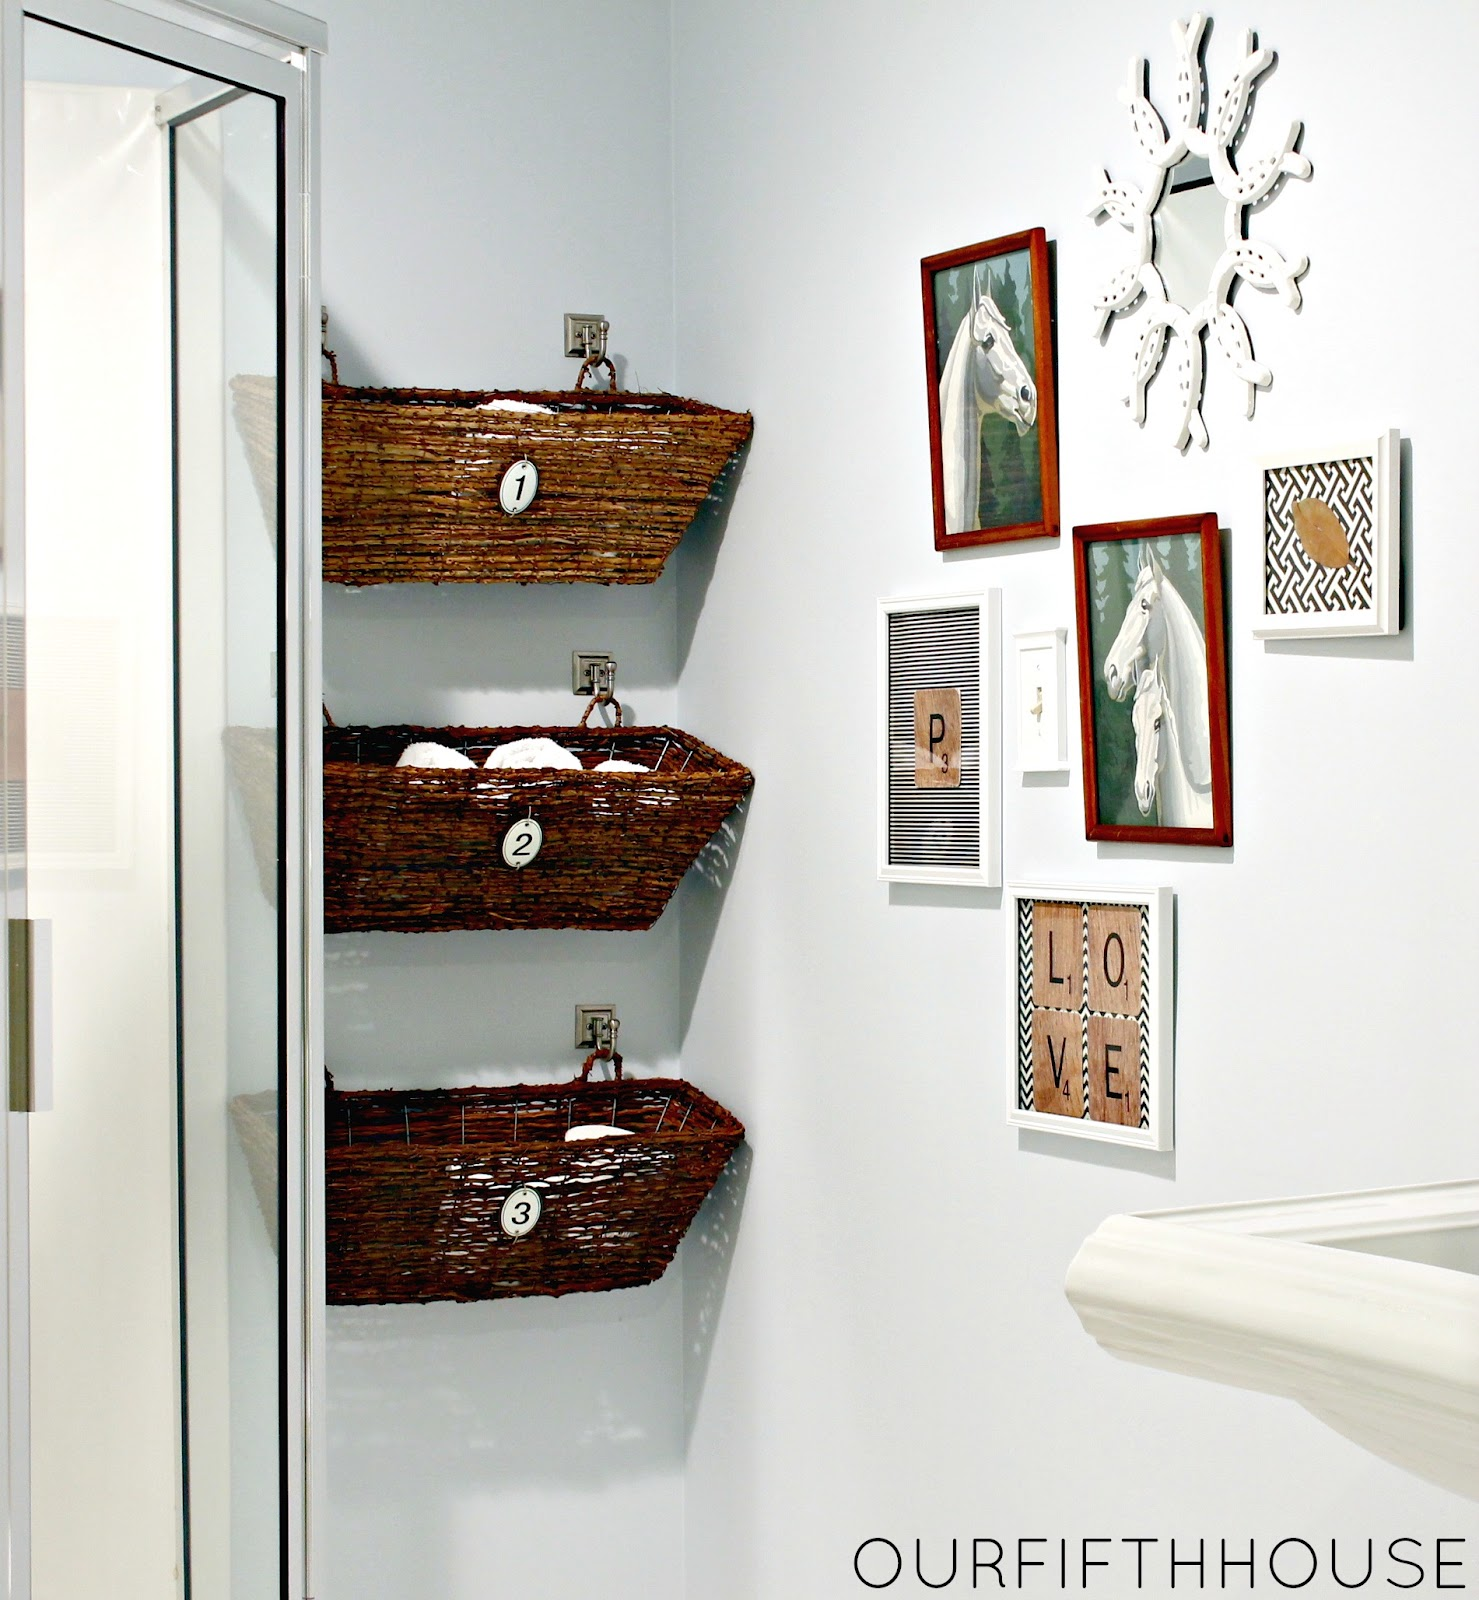 15 small bathroom storage ideas wall storage solutions and shelves for bathrooms - Storage Design Ideas